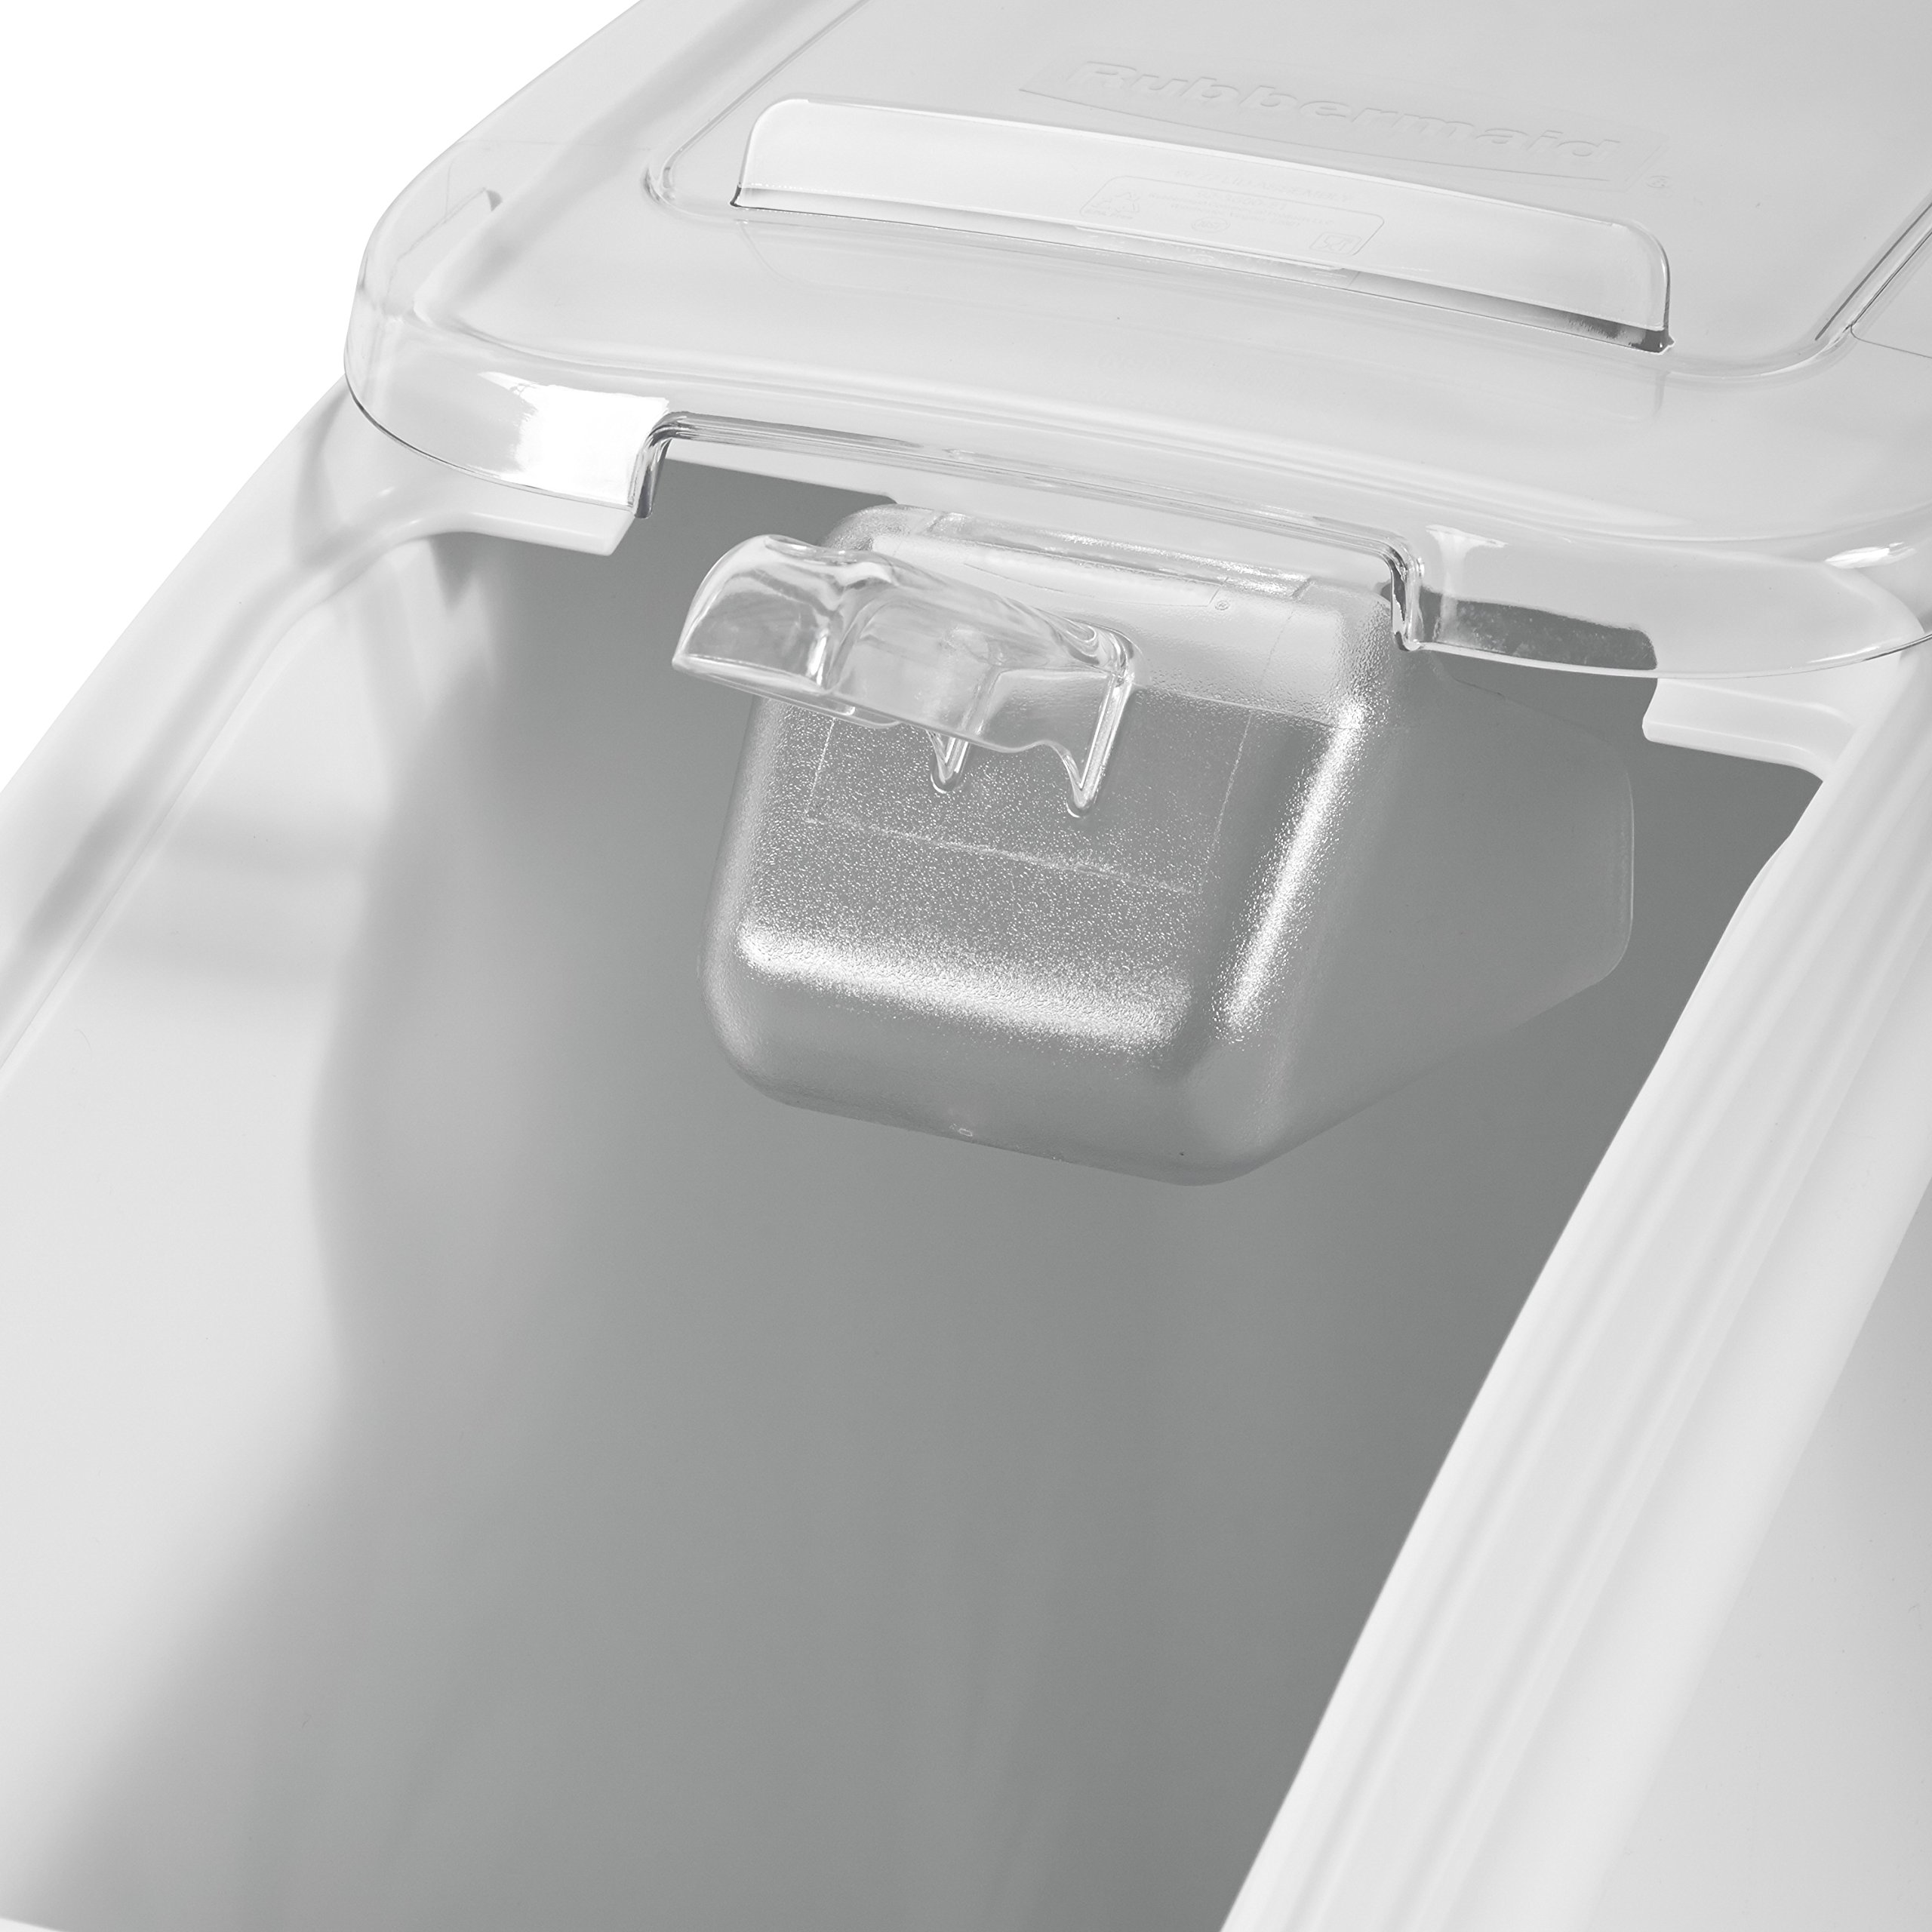 Rubbermaid Commercial ProSave Shelf-Storage Ingredient Bin With Scoop, Plastic, Stackable, 400-cup capacity, White, (FG360088WHT) by Rubbermaid Commercial Products (Image #5)